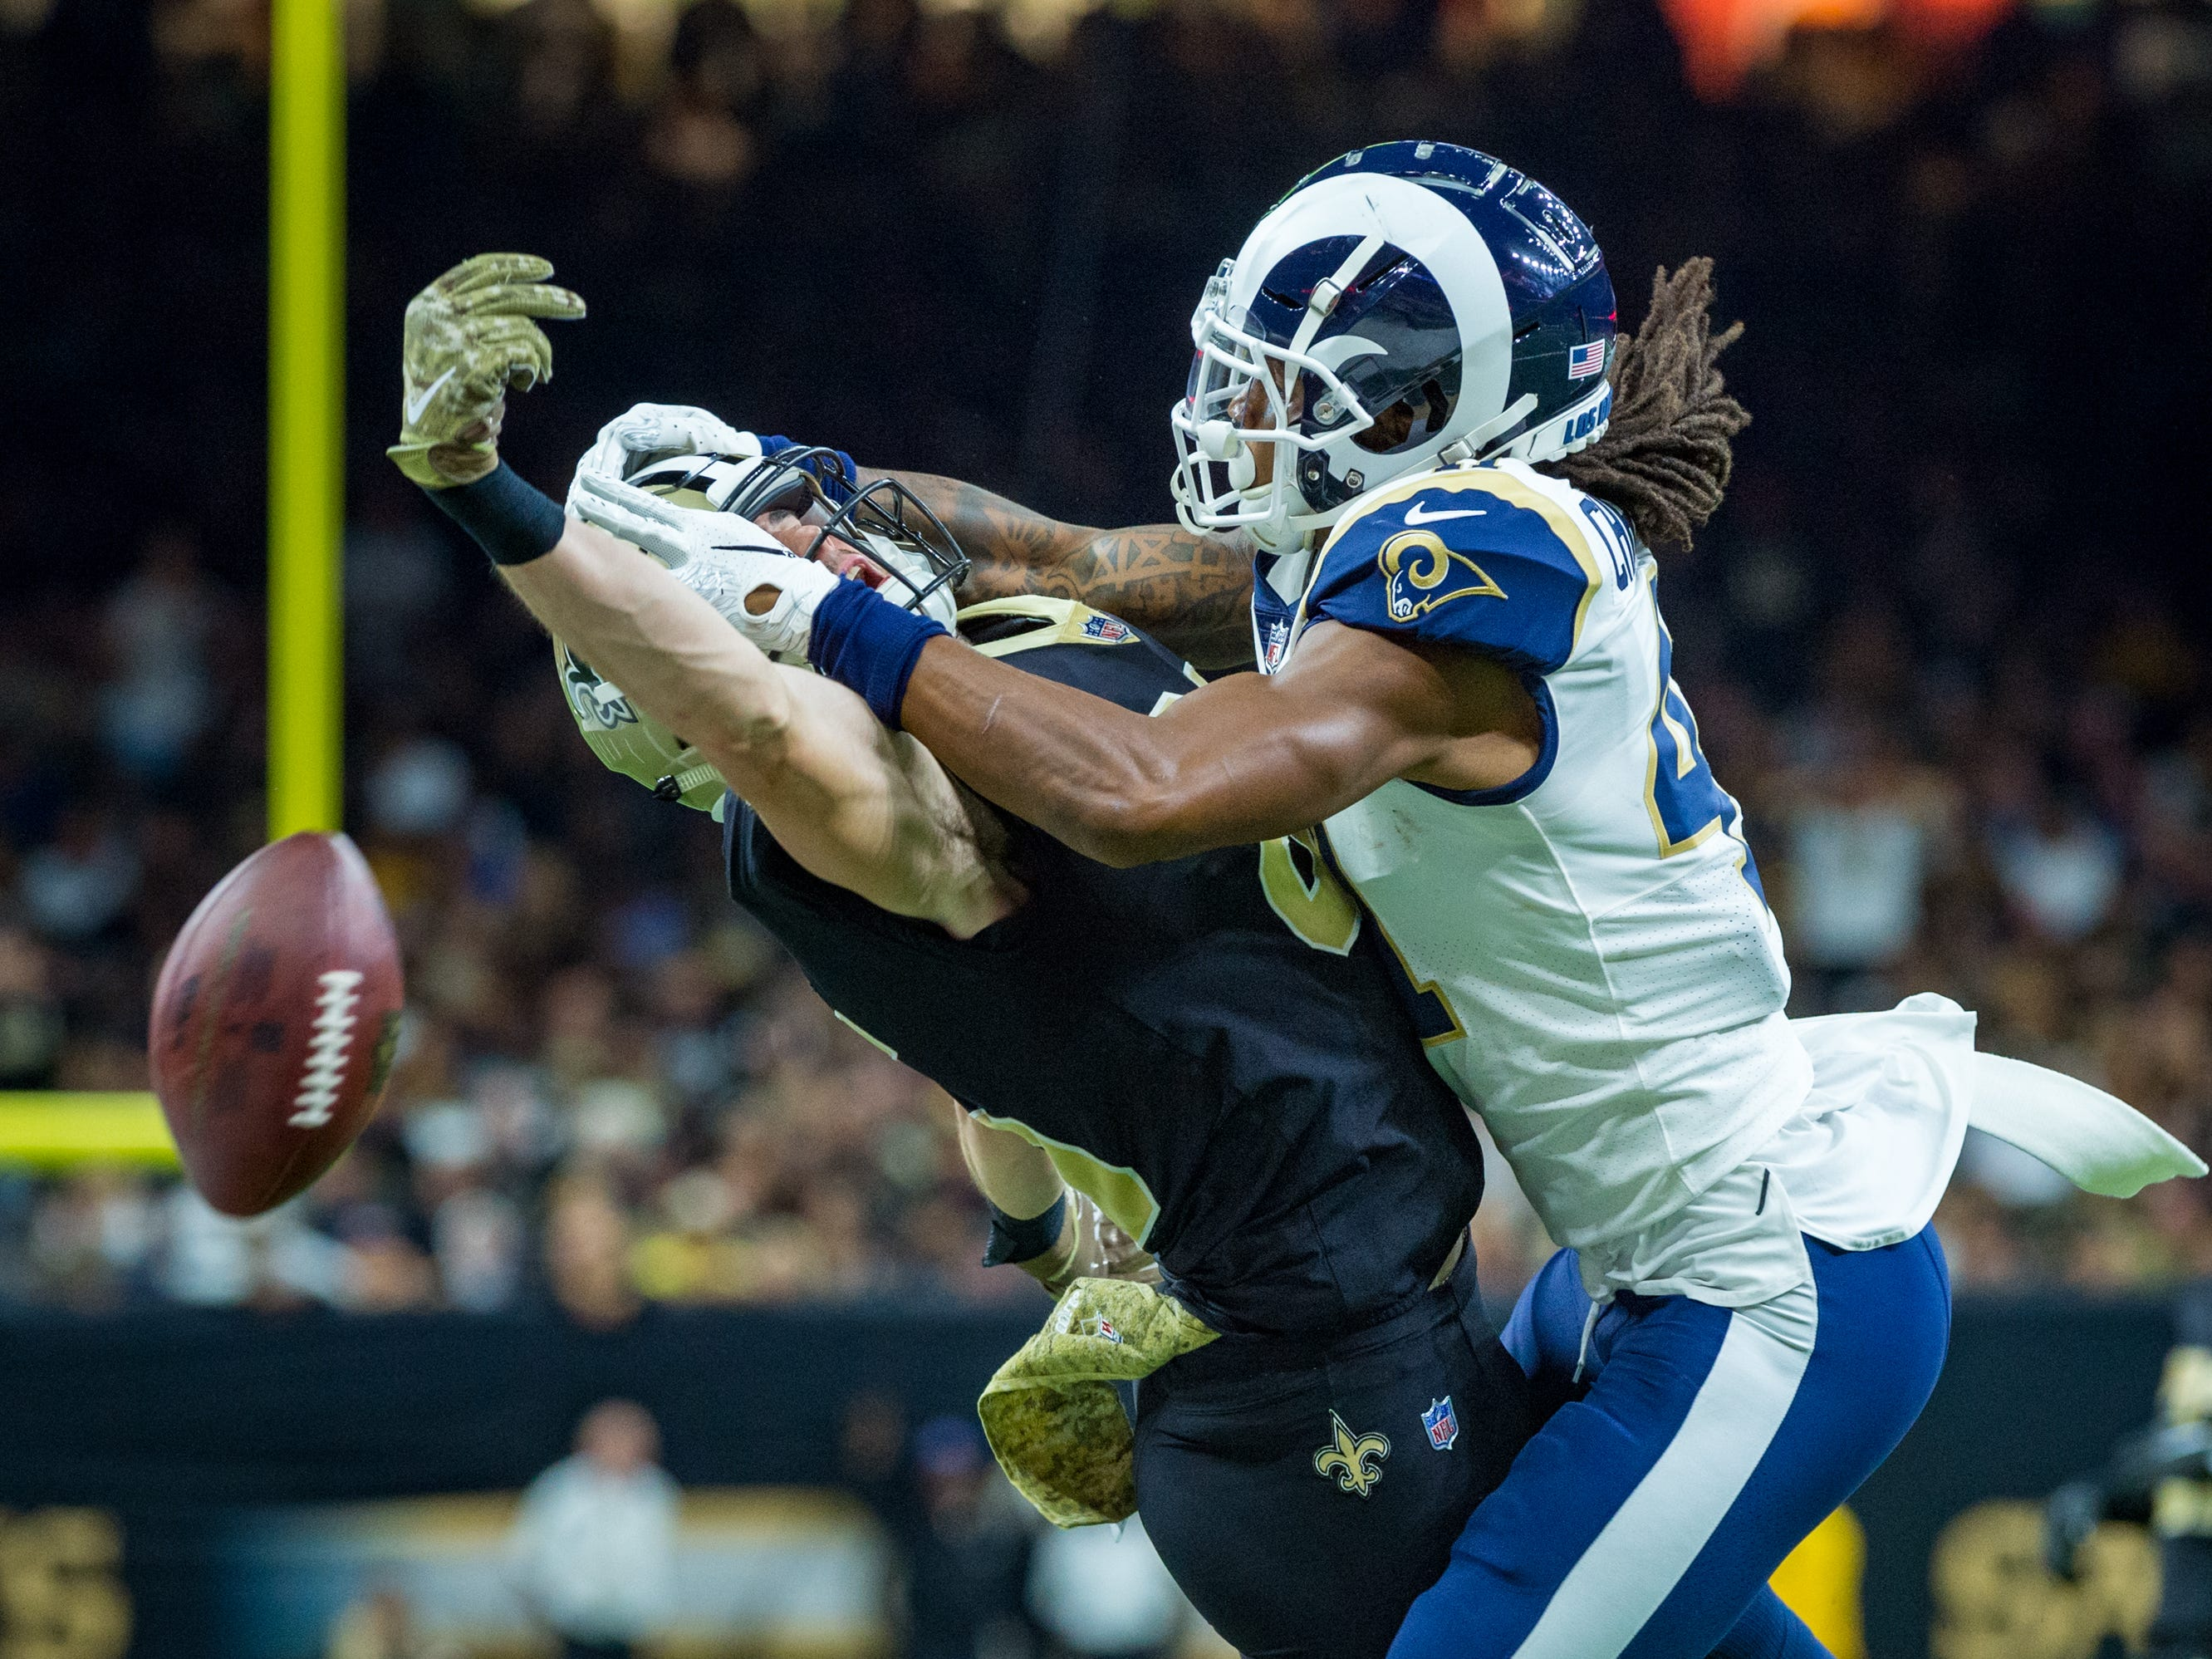 Marqui Christian breaks up a pass thrown to Saints tight end Dan Arnold during the NFL football game between the New Orleans Saints and the Los Angeles Rams on Sunday, Nov. 4, 2018.